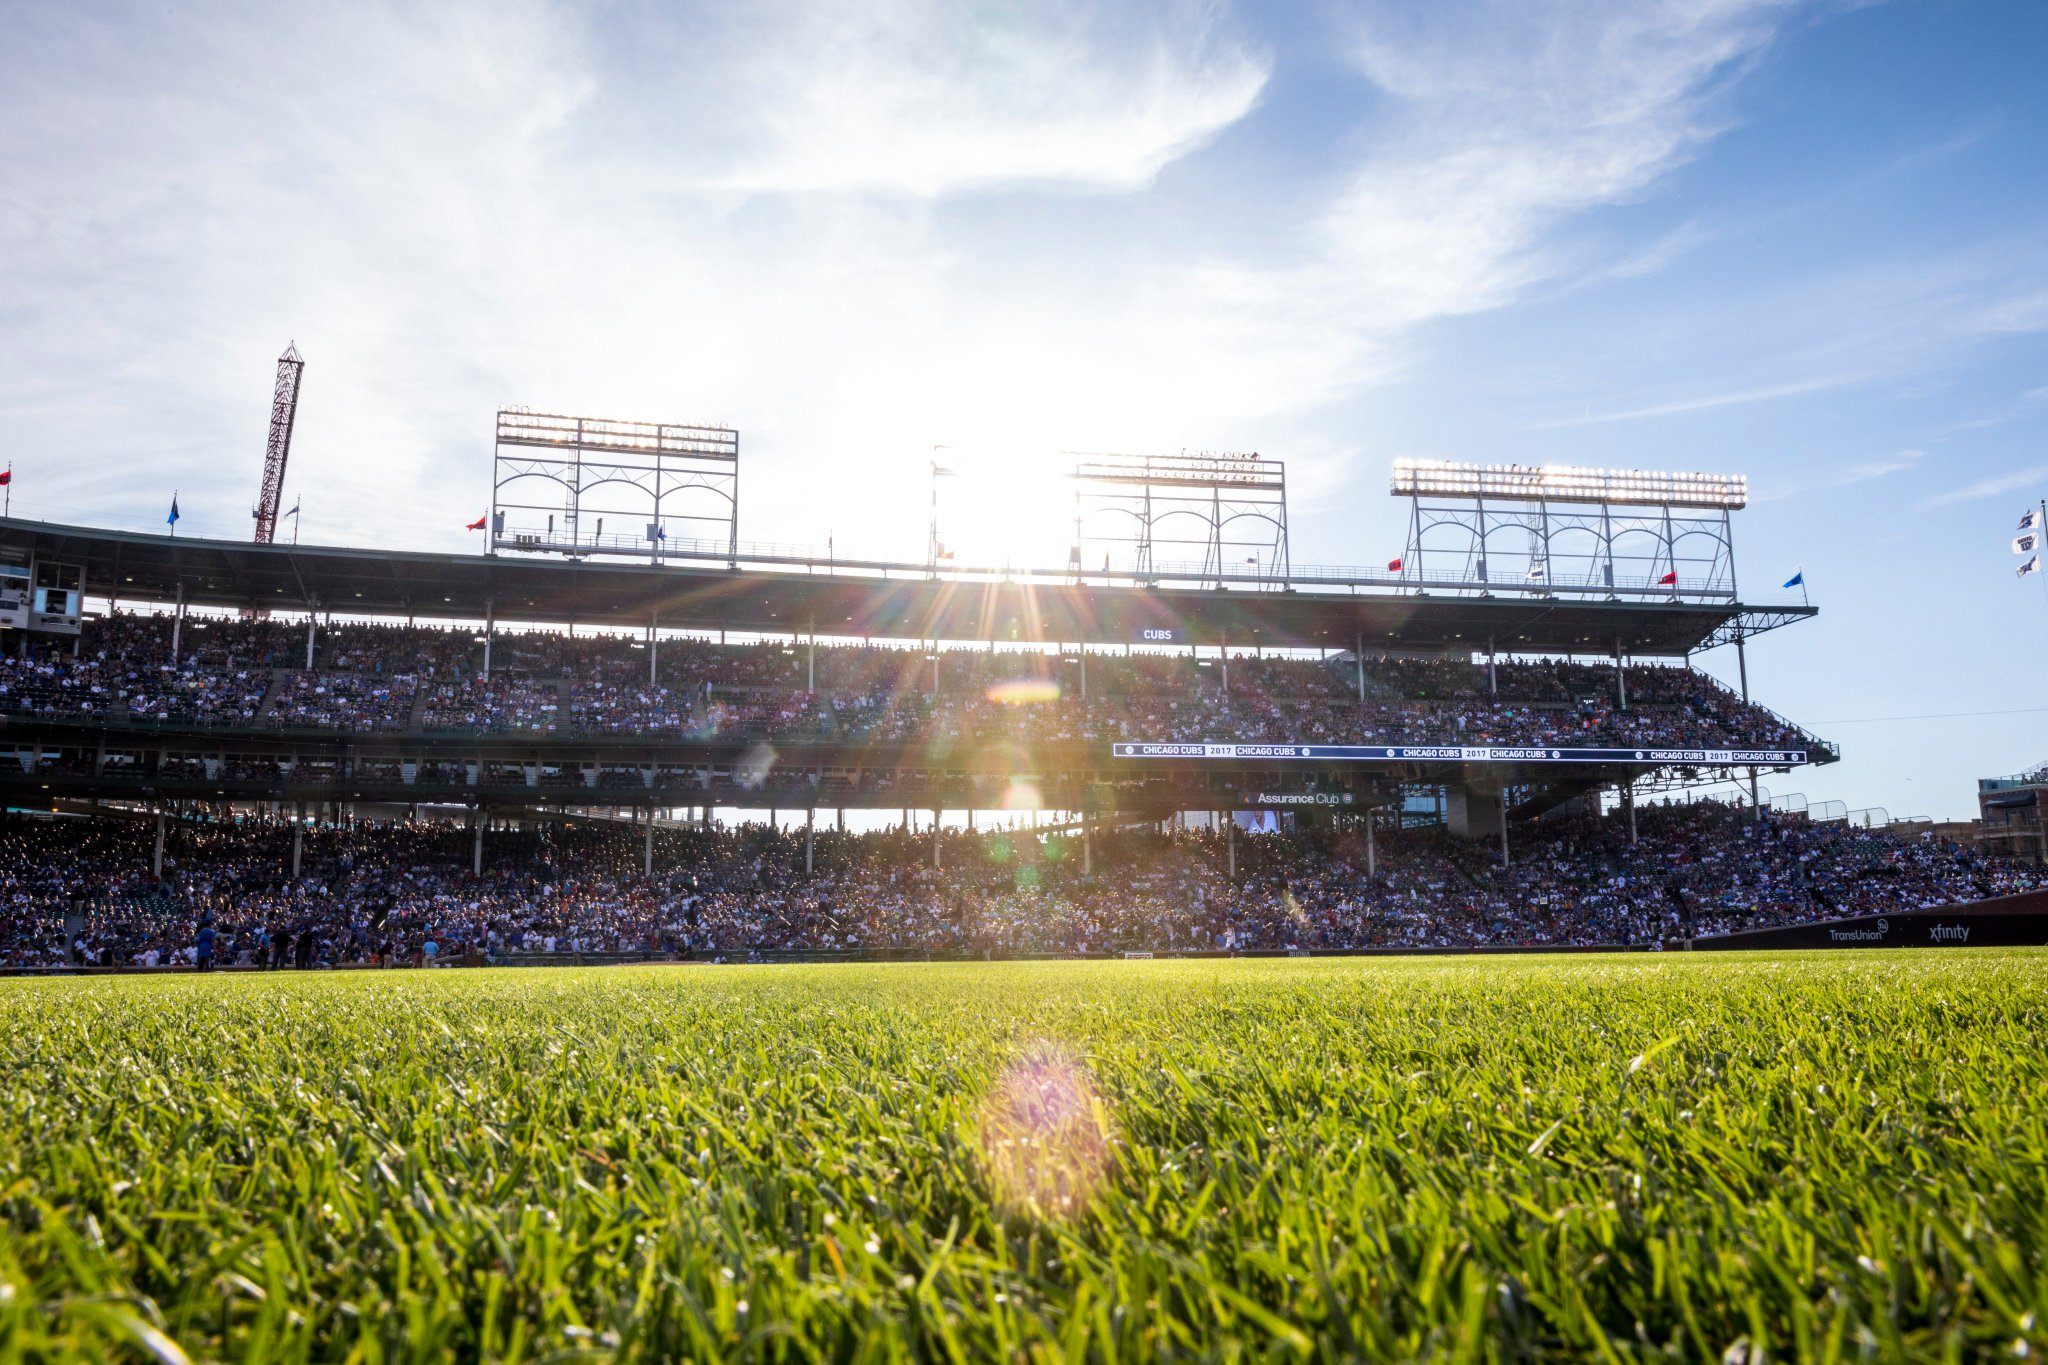 There's no place like Wrigley Field.  ⚾️➡️ https://t.co/fNyUgUNnc2 https://t.co/3yqAHpdFBe